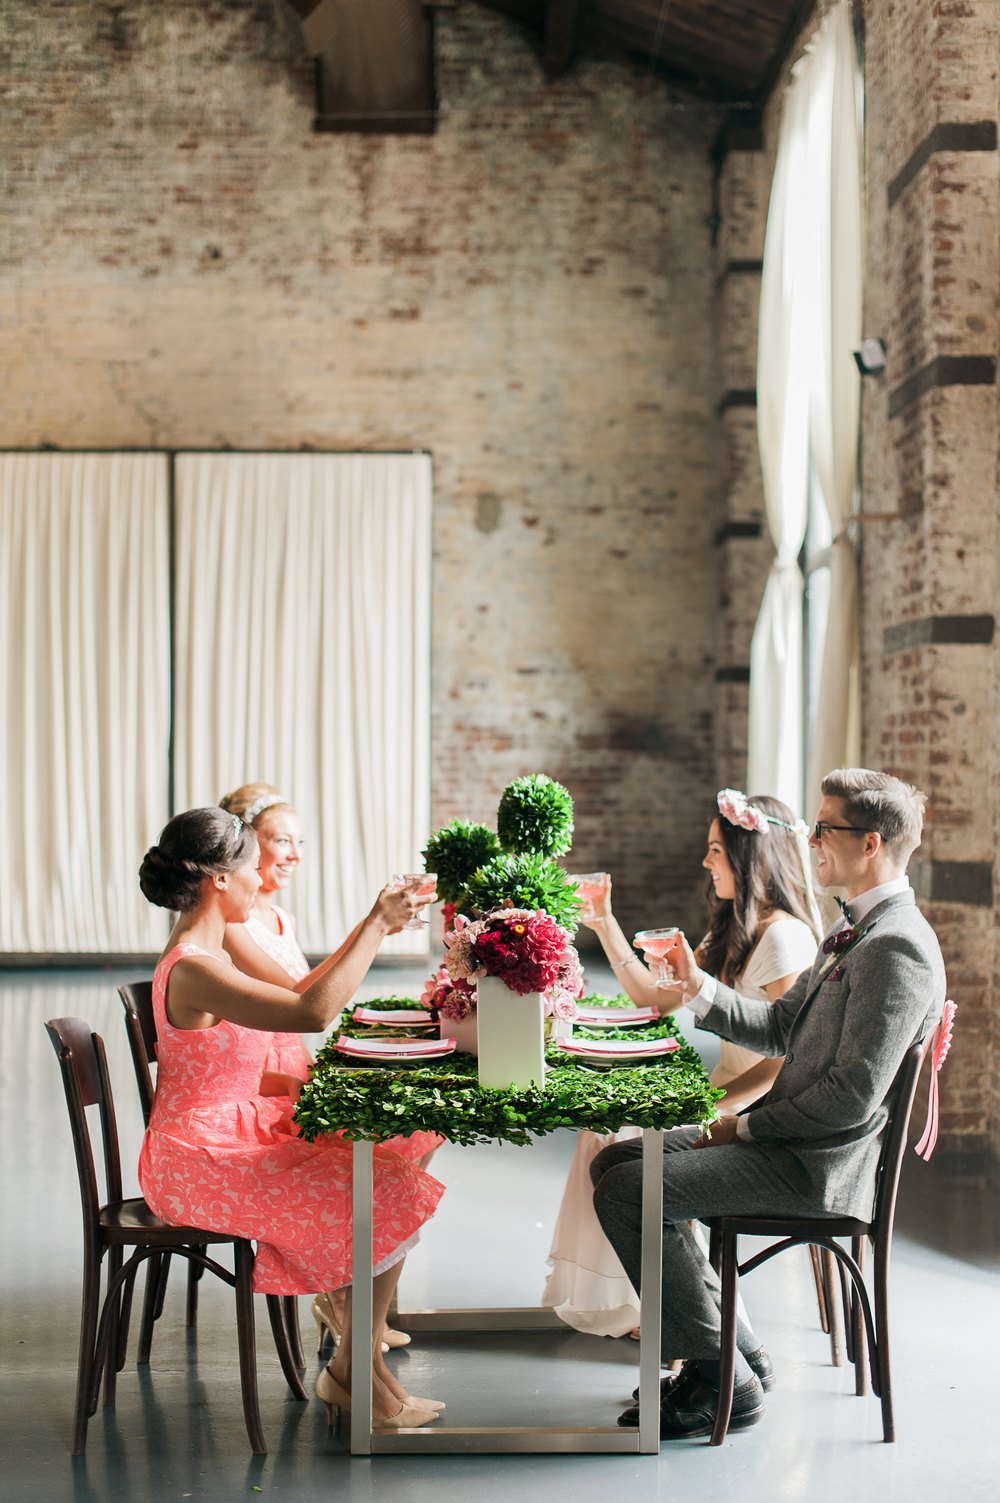 the_green_building_brooklyn_wedding_brklyn view photography_hanaluluco_35.jpg